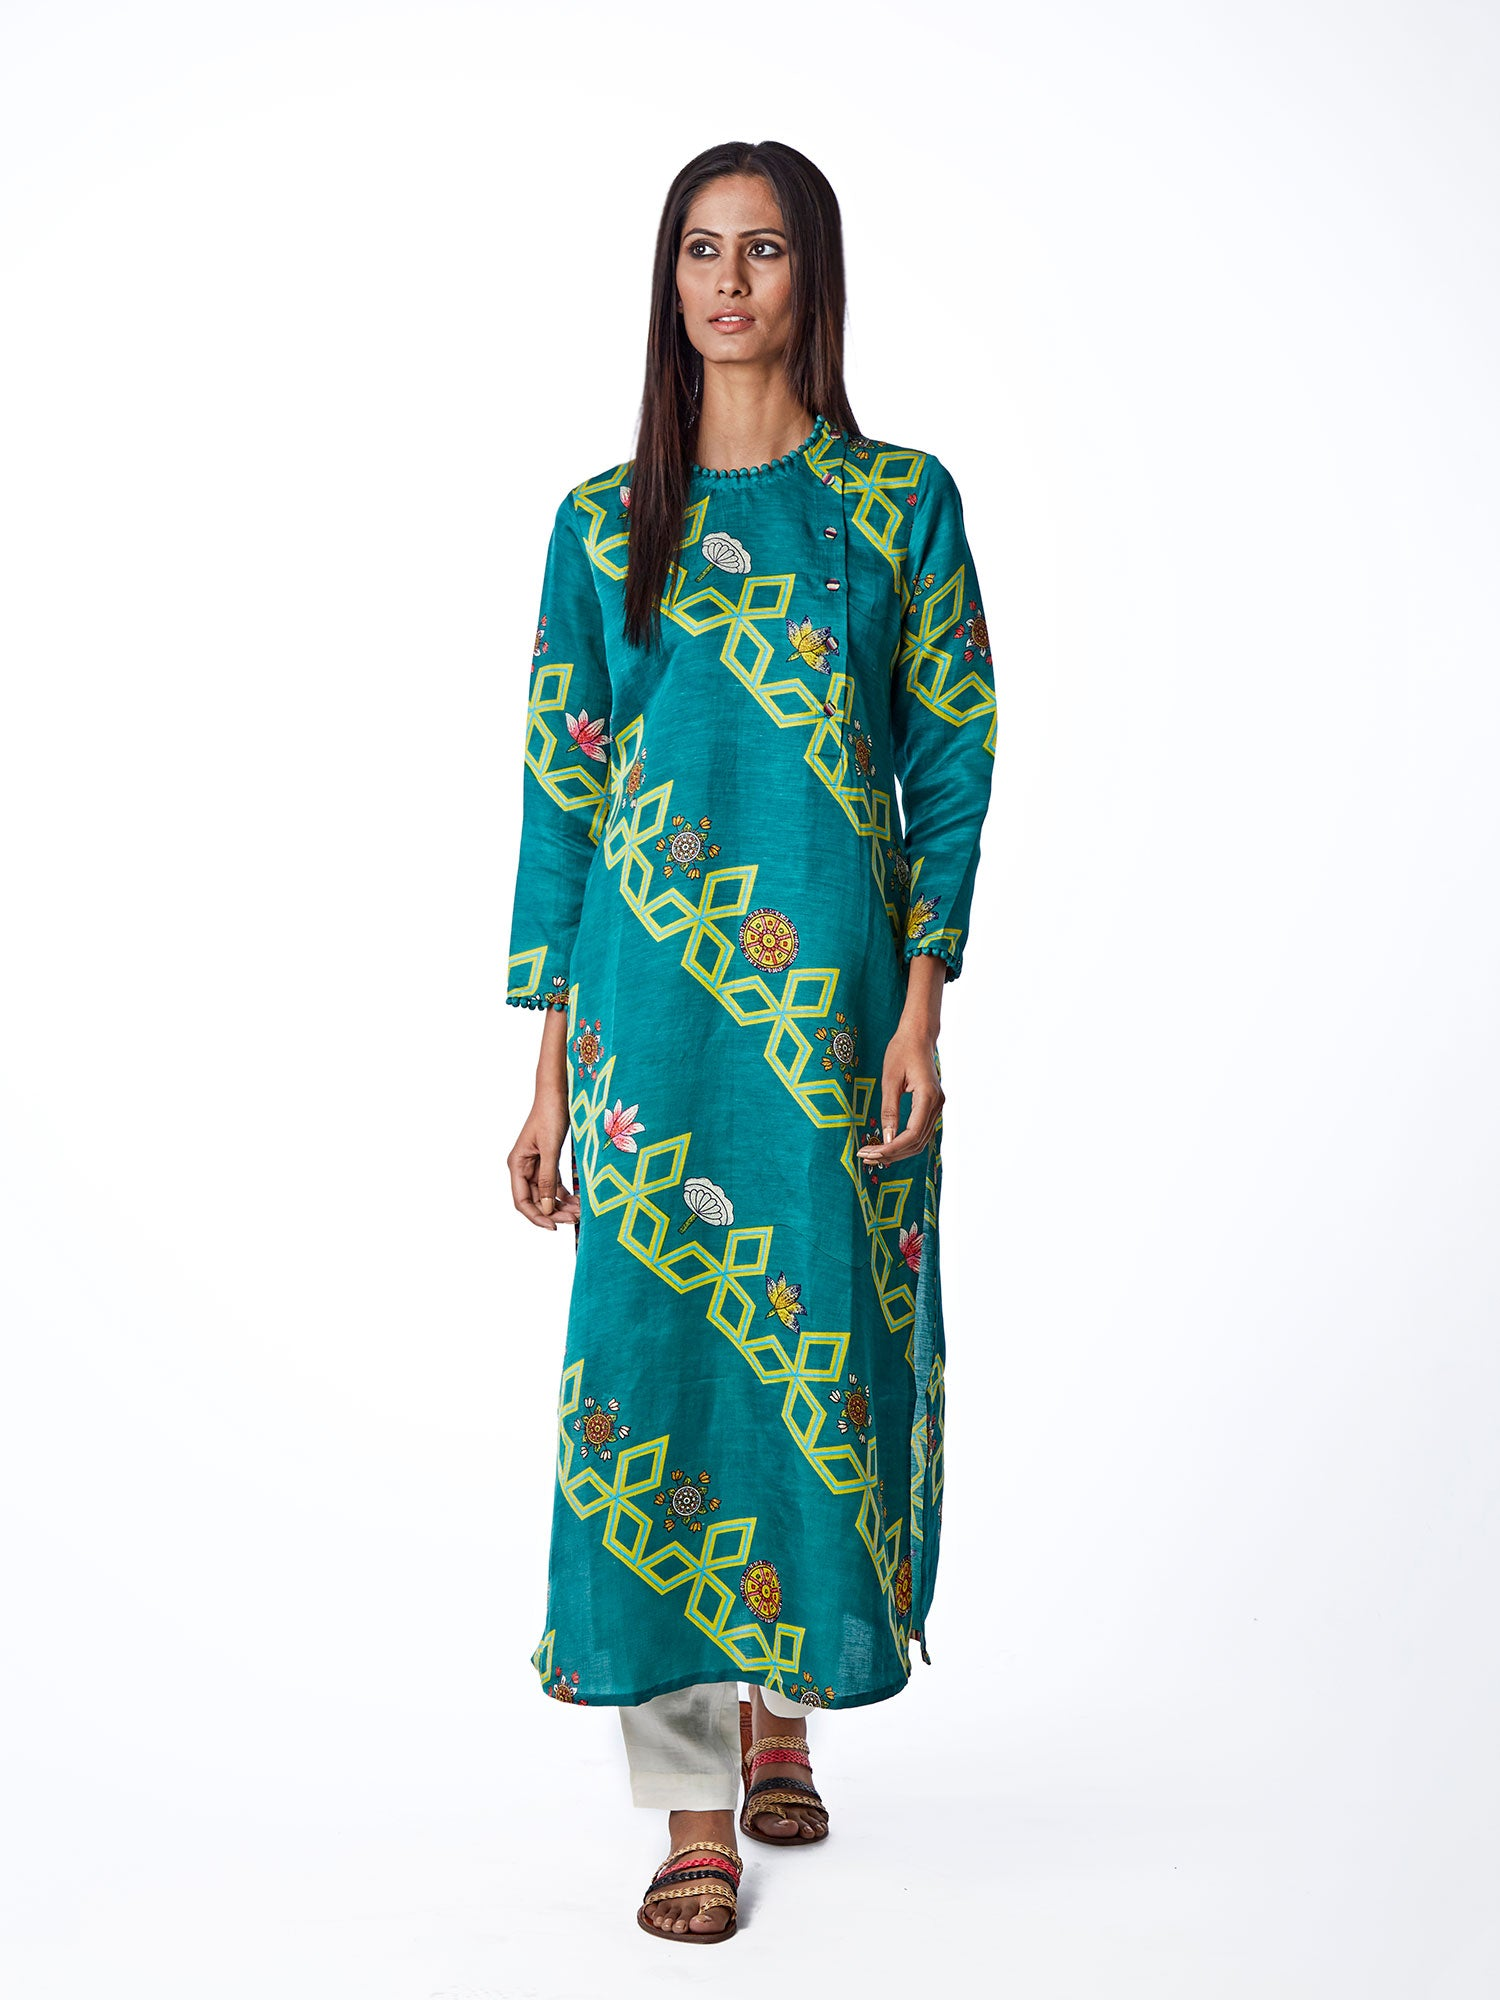 KURTA, TUNIC, PRINTS, INDIAN APPAREL, TRADITIONAL, ETHNICWEAR, KURTA SETS